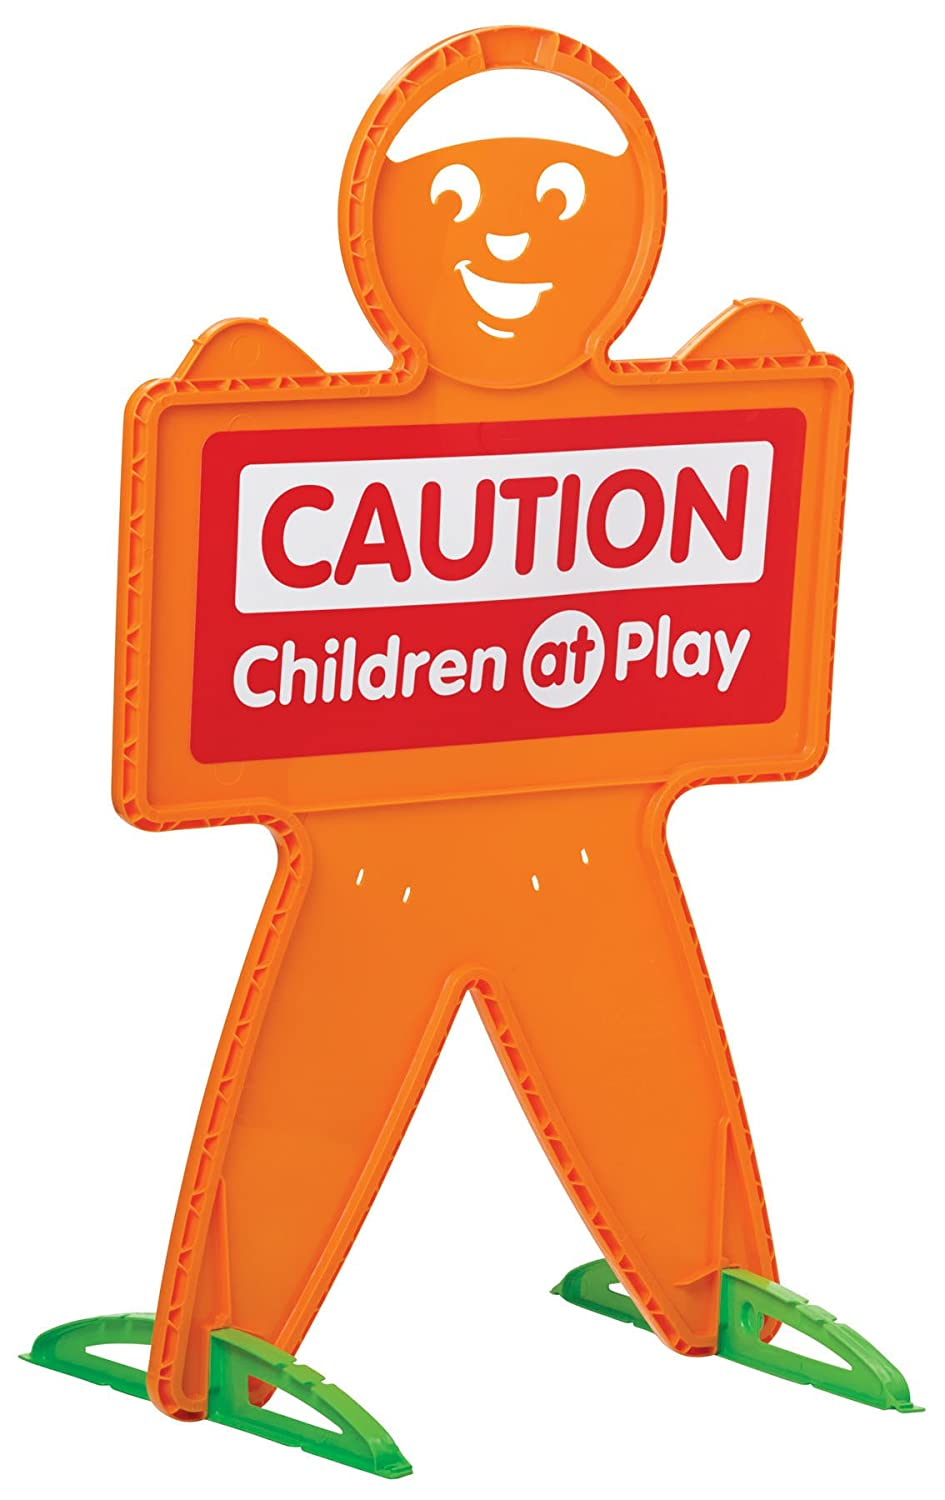 Toys Safety Signs Safety Man Toys Games